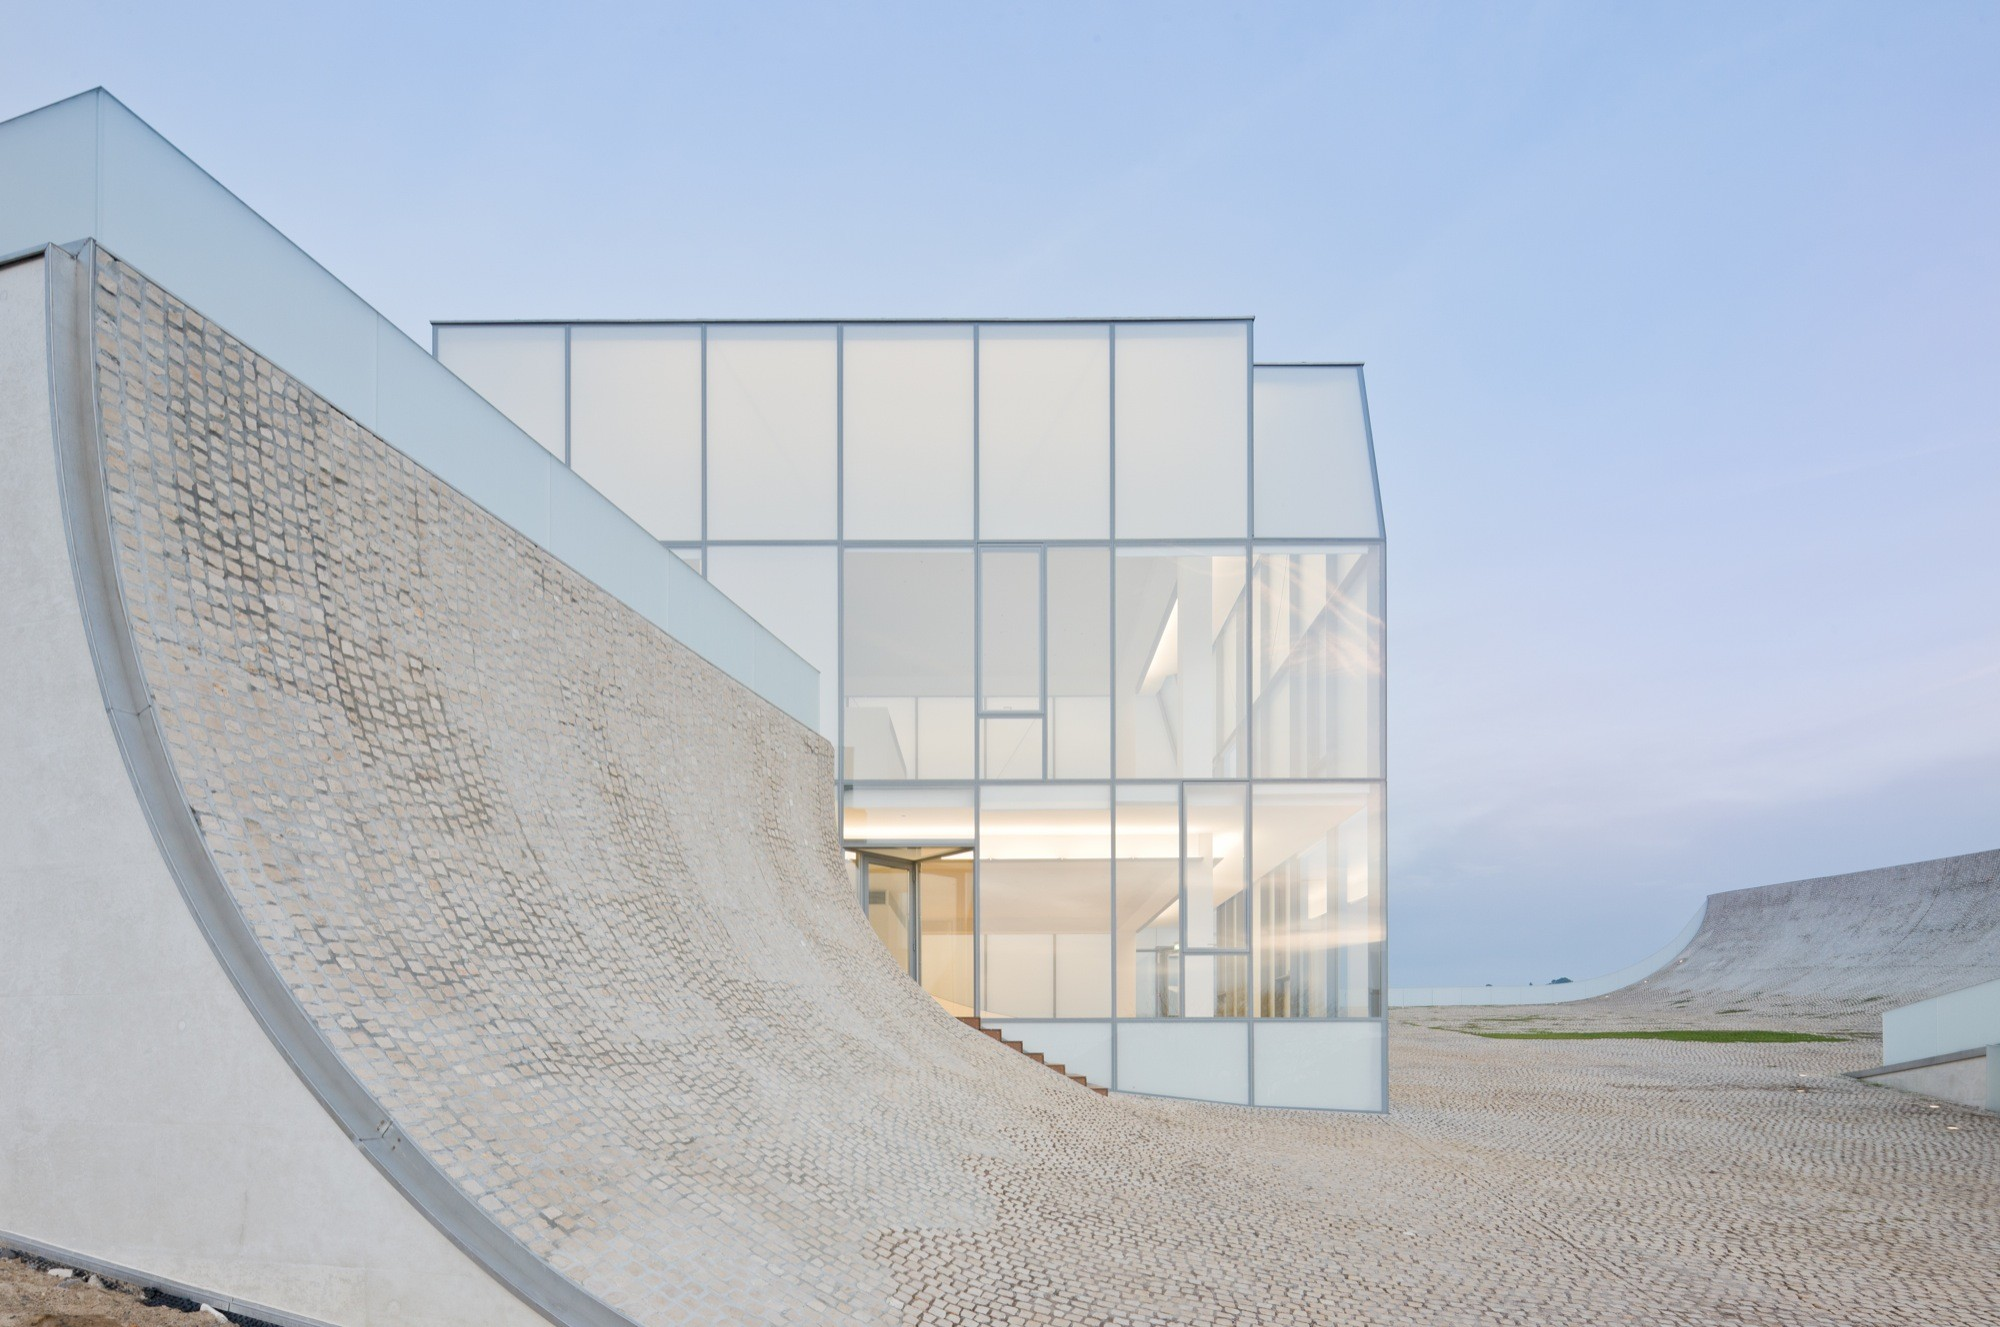 World Photo Day: Iwan Baan by Steven Holl, Museum of Ocean and Surf / Steven Holl Architects in collaboration with Solange Fabiao. Image © Iwan Baan